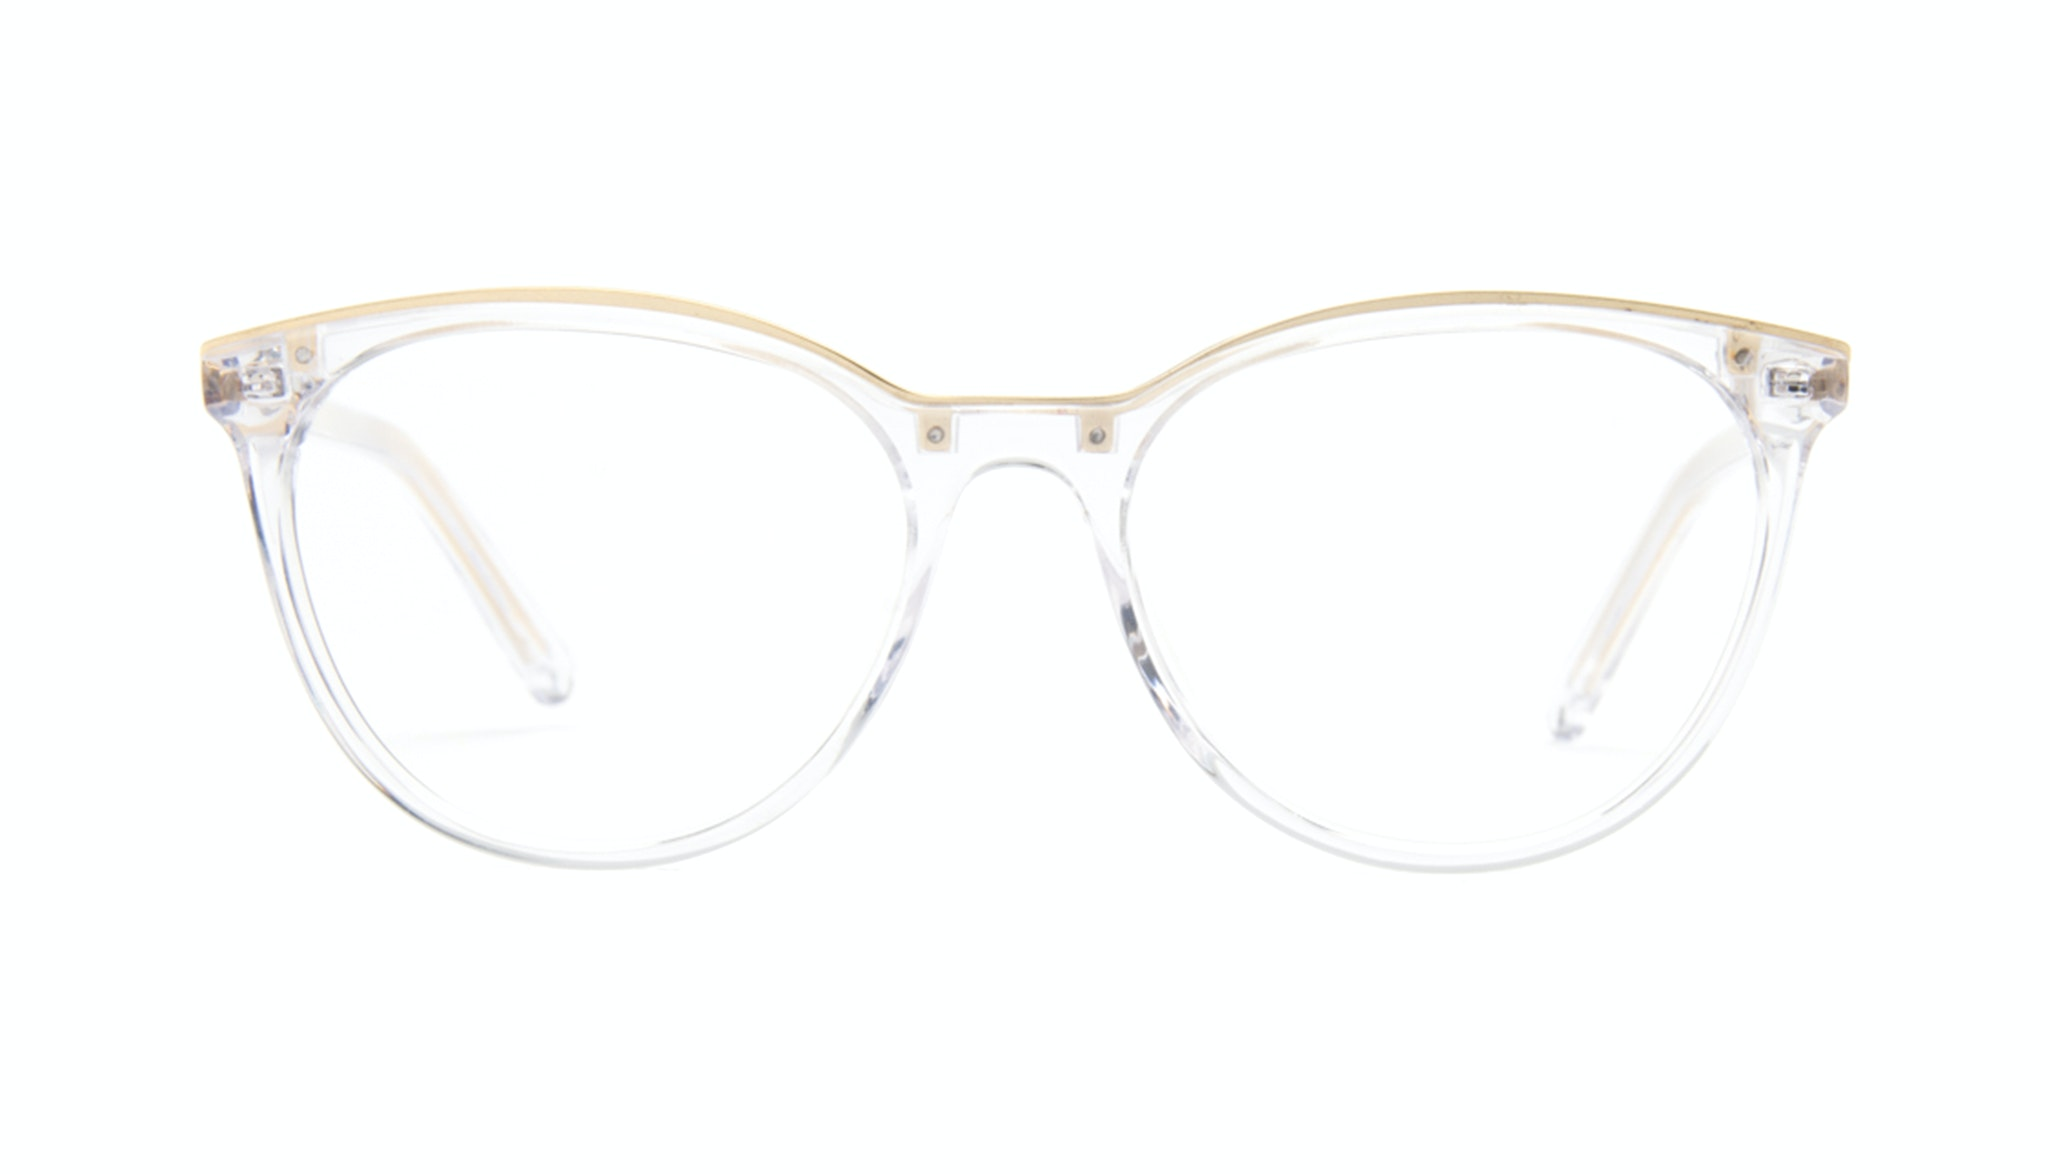 Affordable Fashion Glasses Round Eyeglasses Women Gypsy Diamond Gold Front